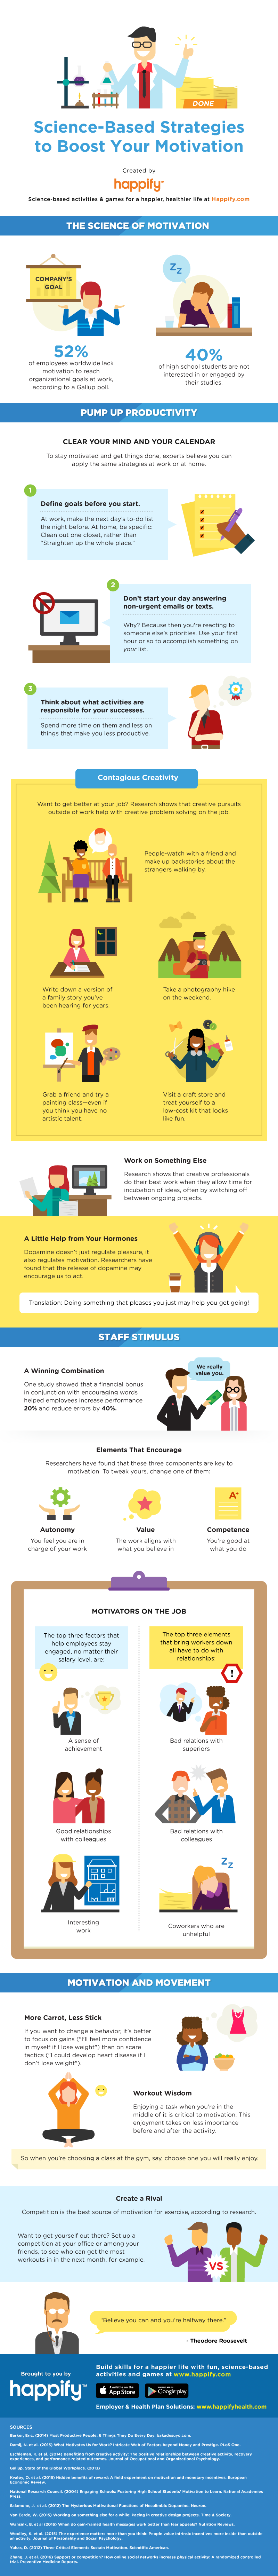 Science-Based Strategies To Boost Your Motivation - #infographic